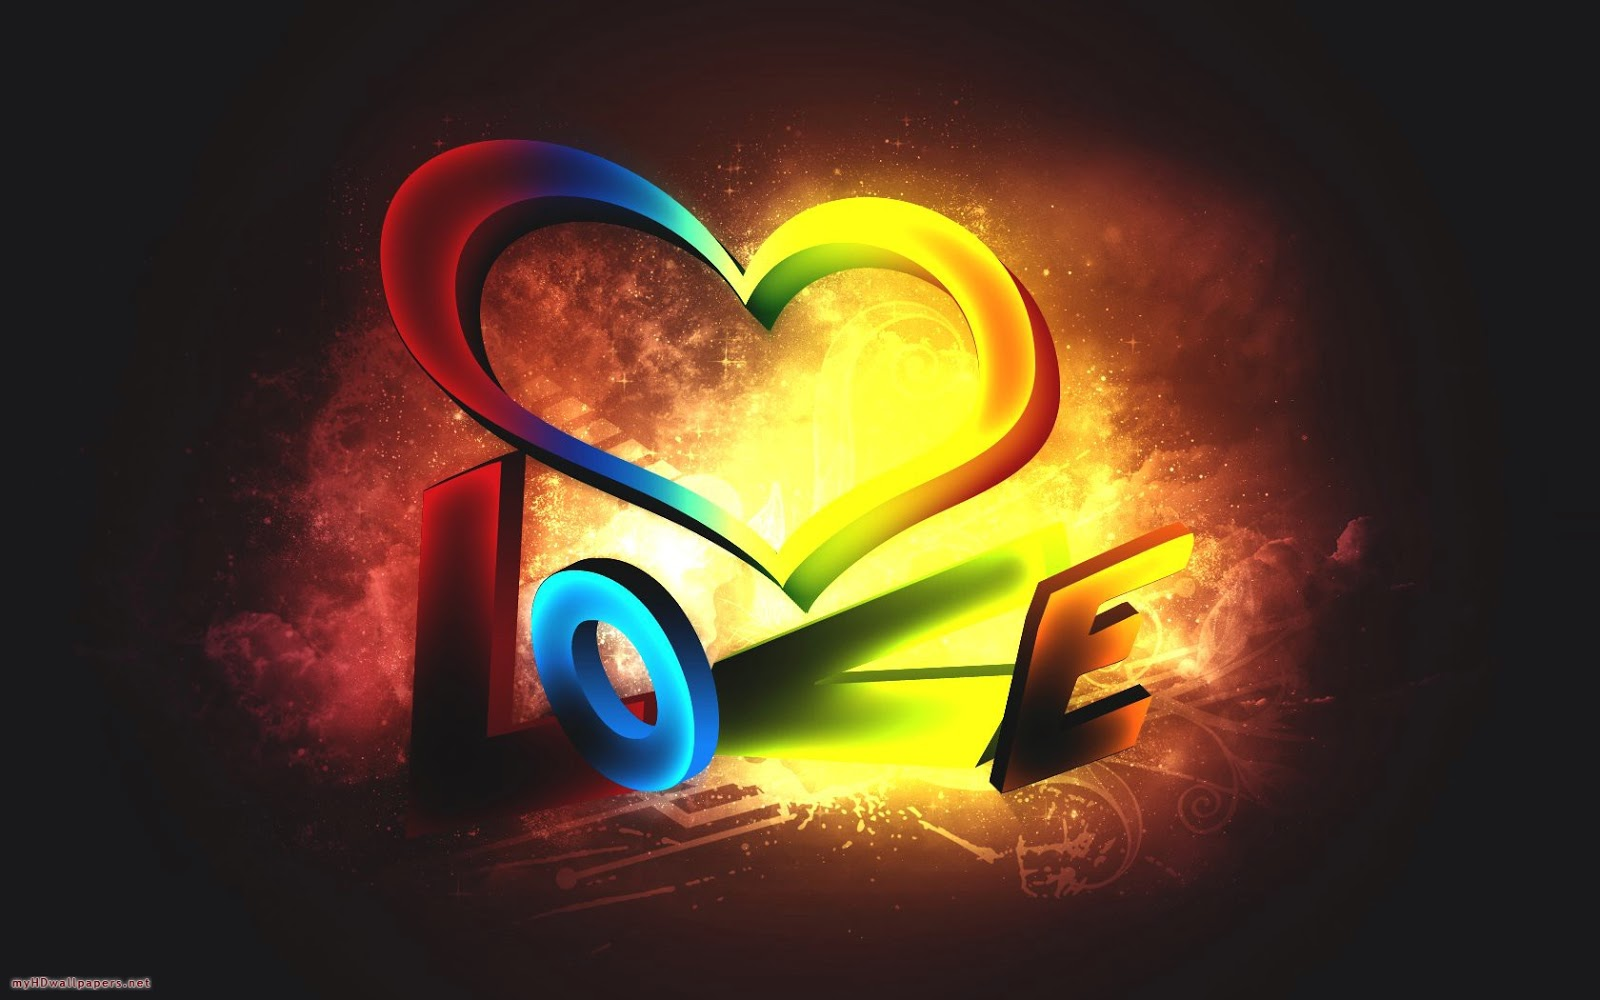 Beautiful Love Wallpapers Hd For Mobile : Unique And Wonderful Wallpapers Of Love Free Download For Android Free Download Wallpaper ...